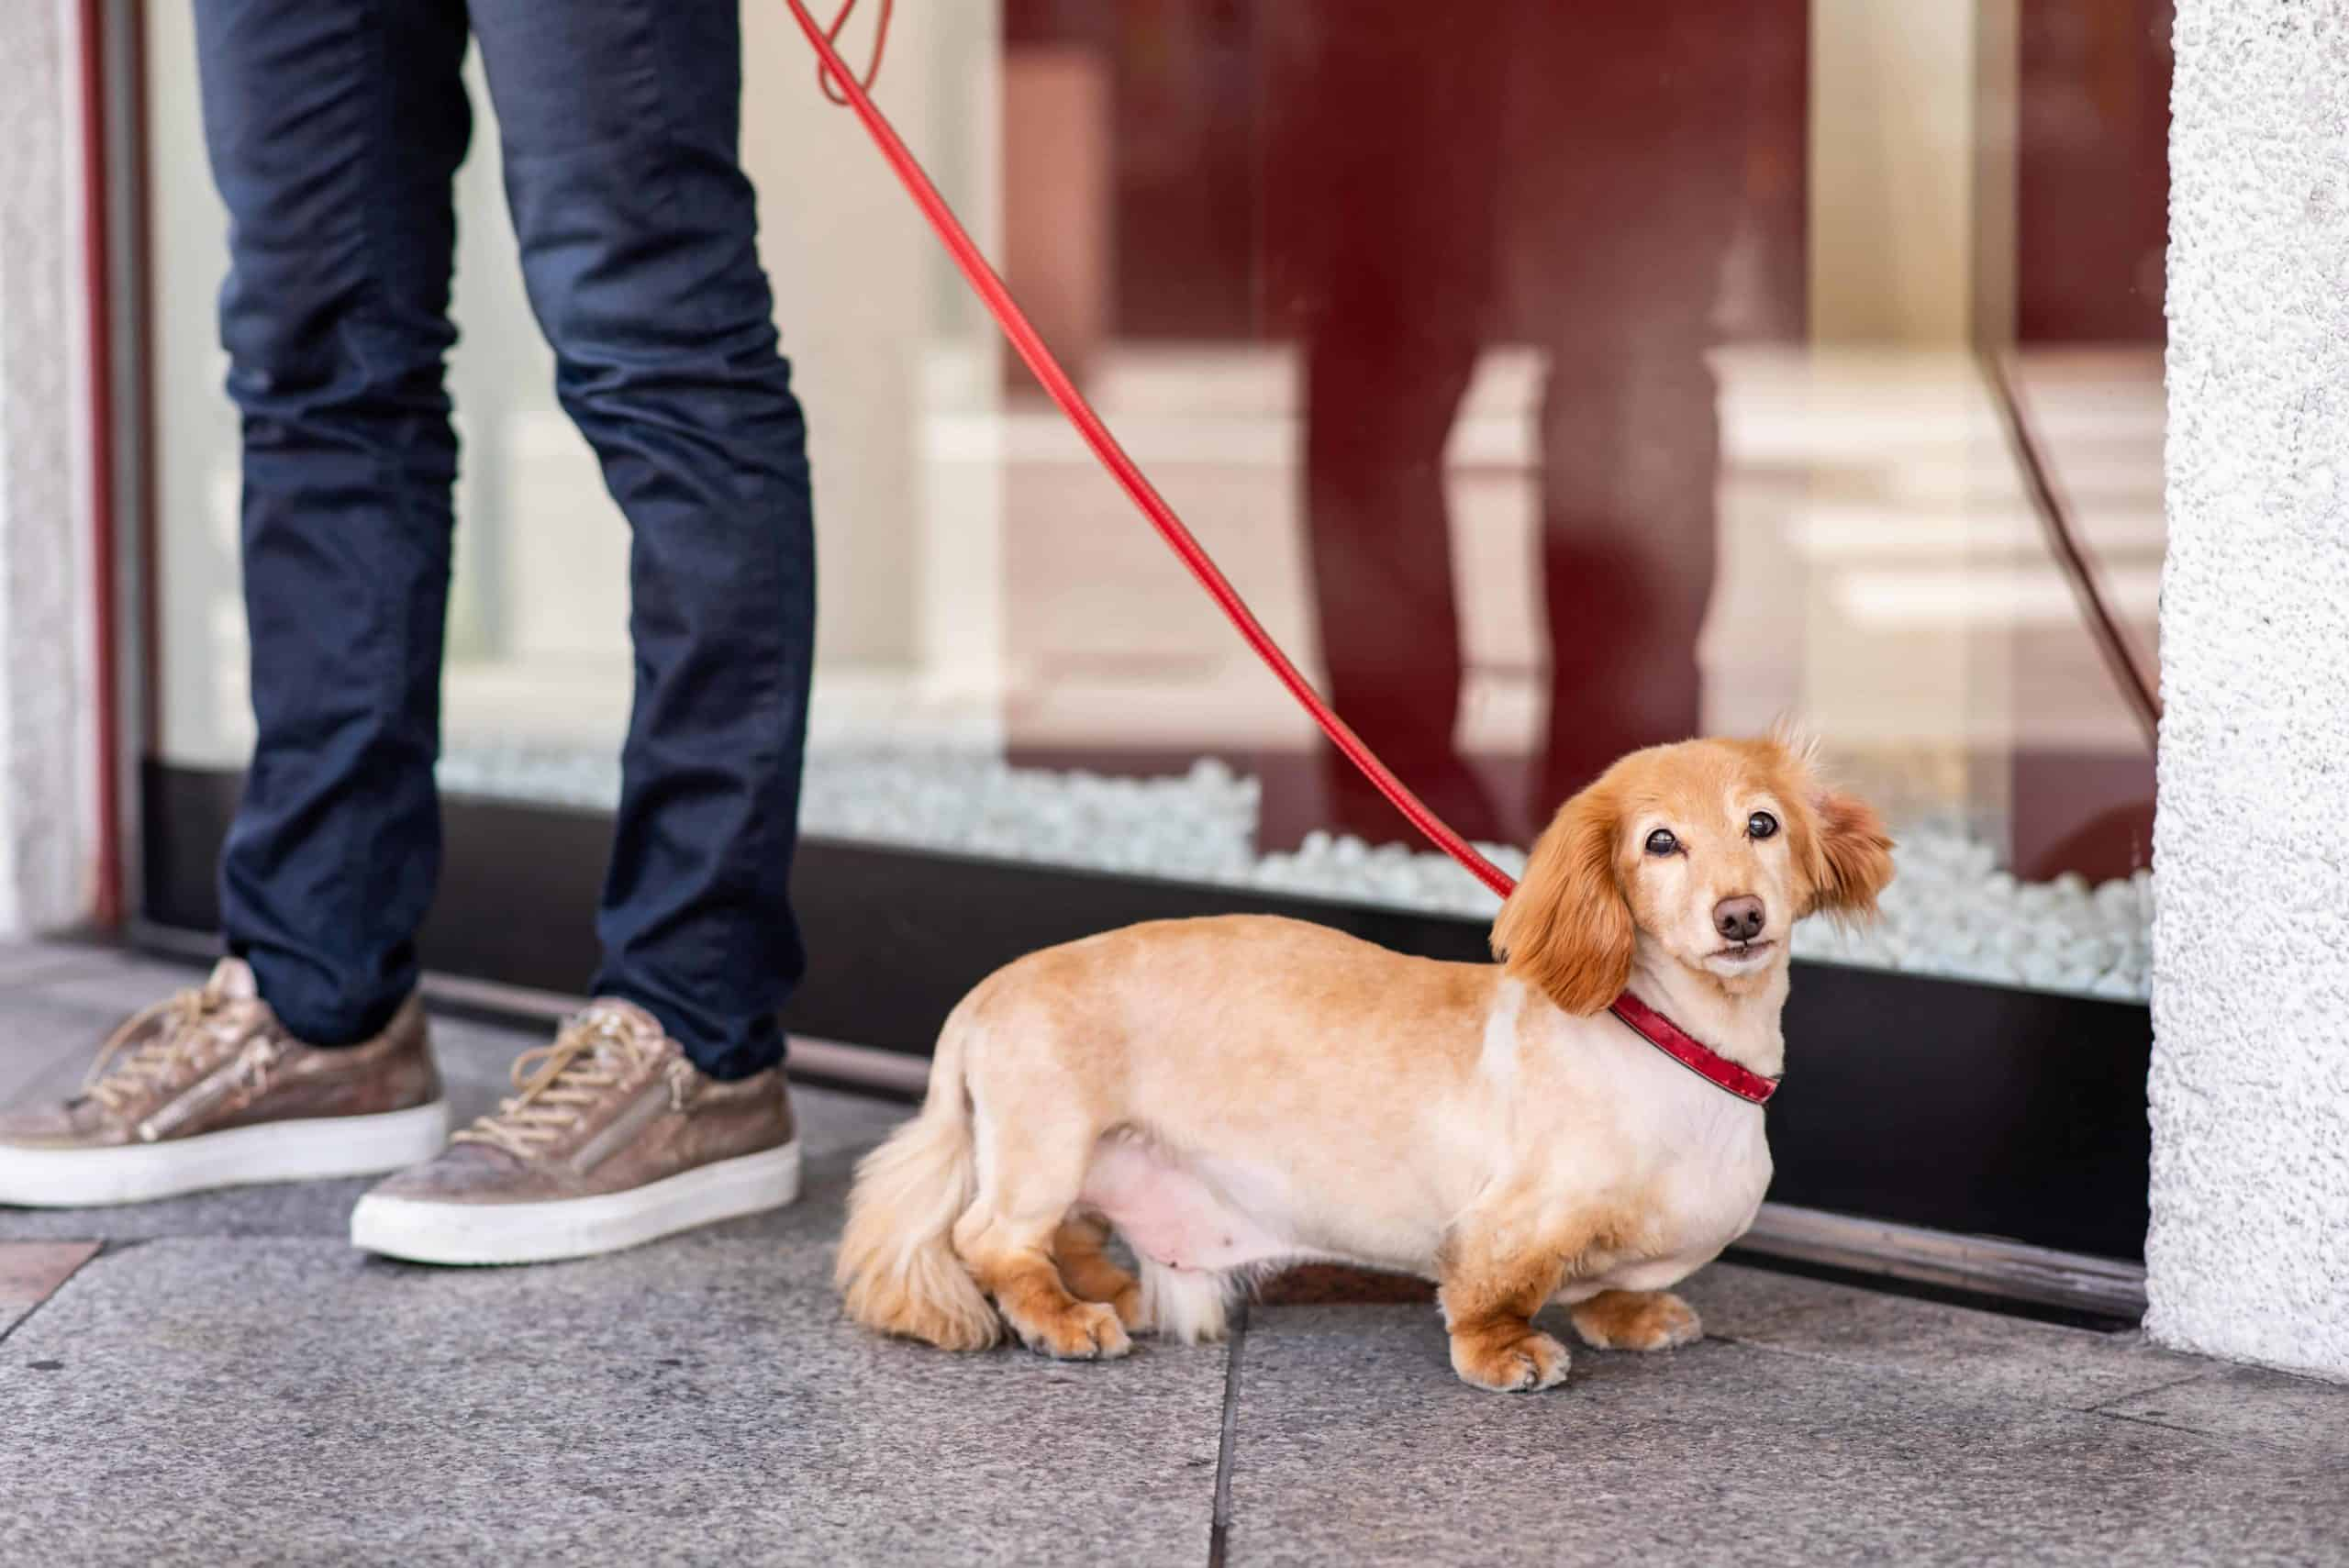 Dachshund rests during a daily walk. Working to keep your dog fit and healthy is important for dog owners. Feed your dog a healthy diet, and provide exercise and socialization.